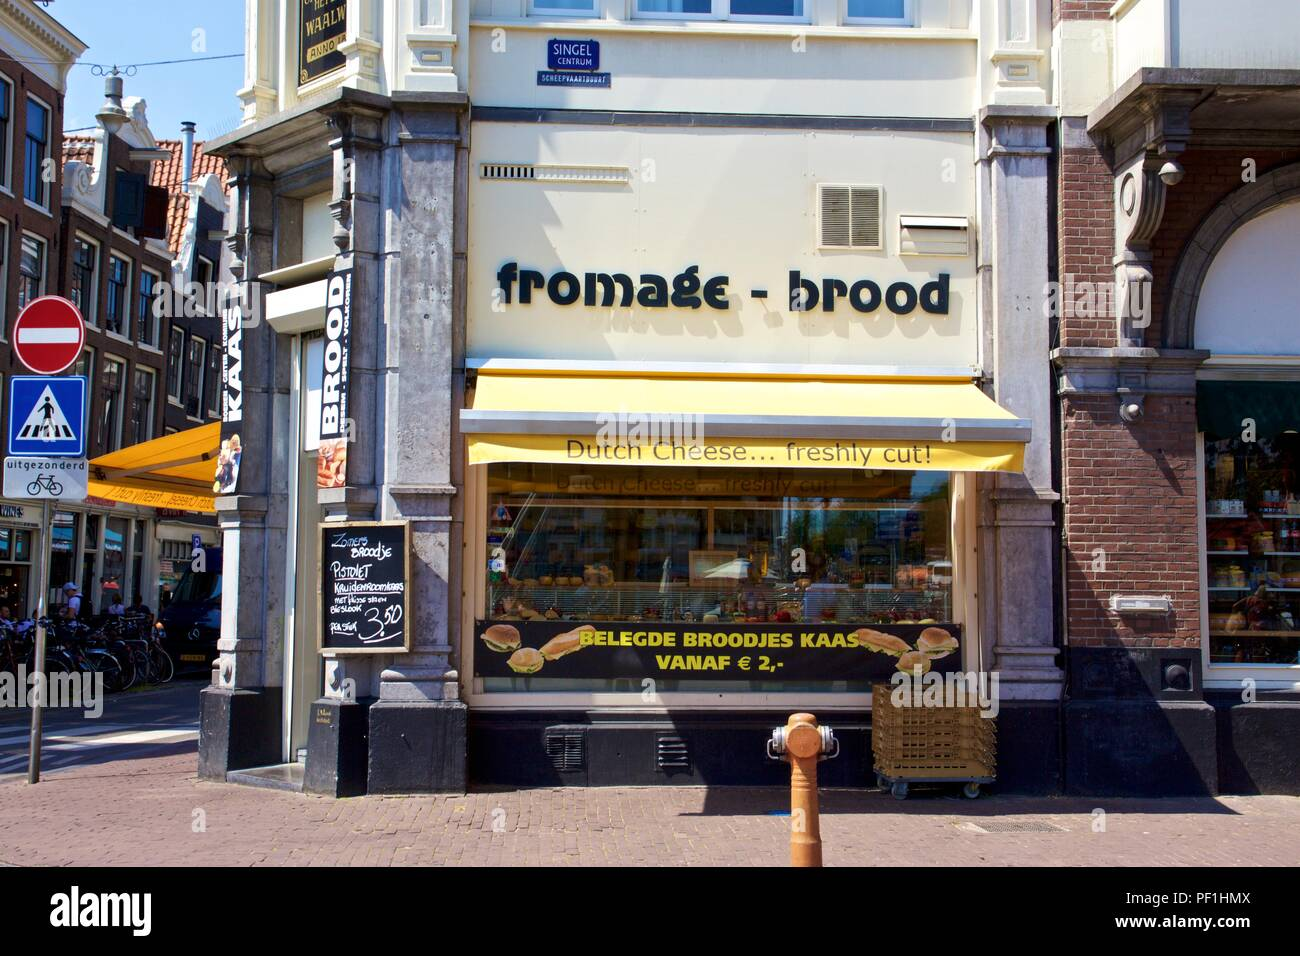 A Dutch Cheese shop with a yellow shopfront advertising 'fromage - brood' on Singel, Amsterdam, the Netherlands - Stock Image